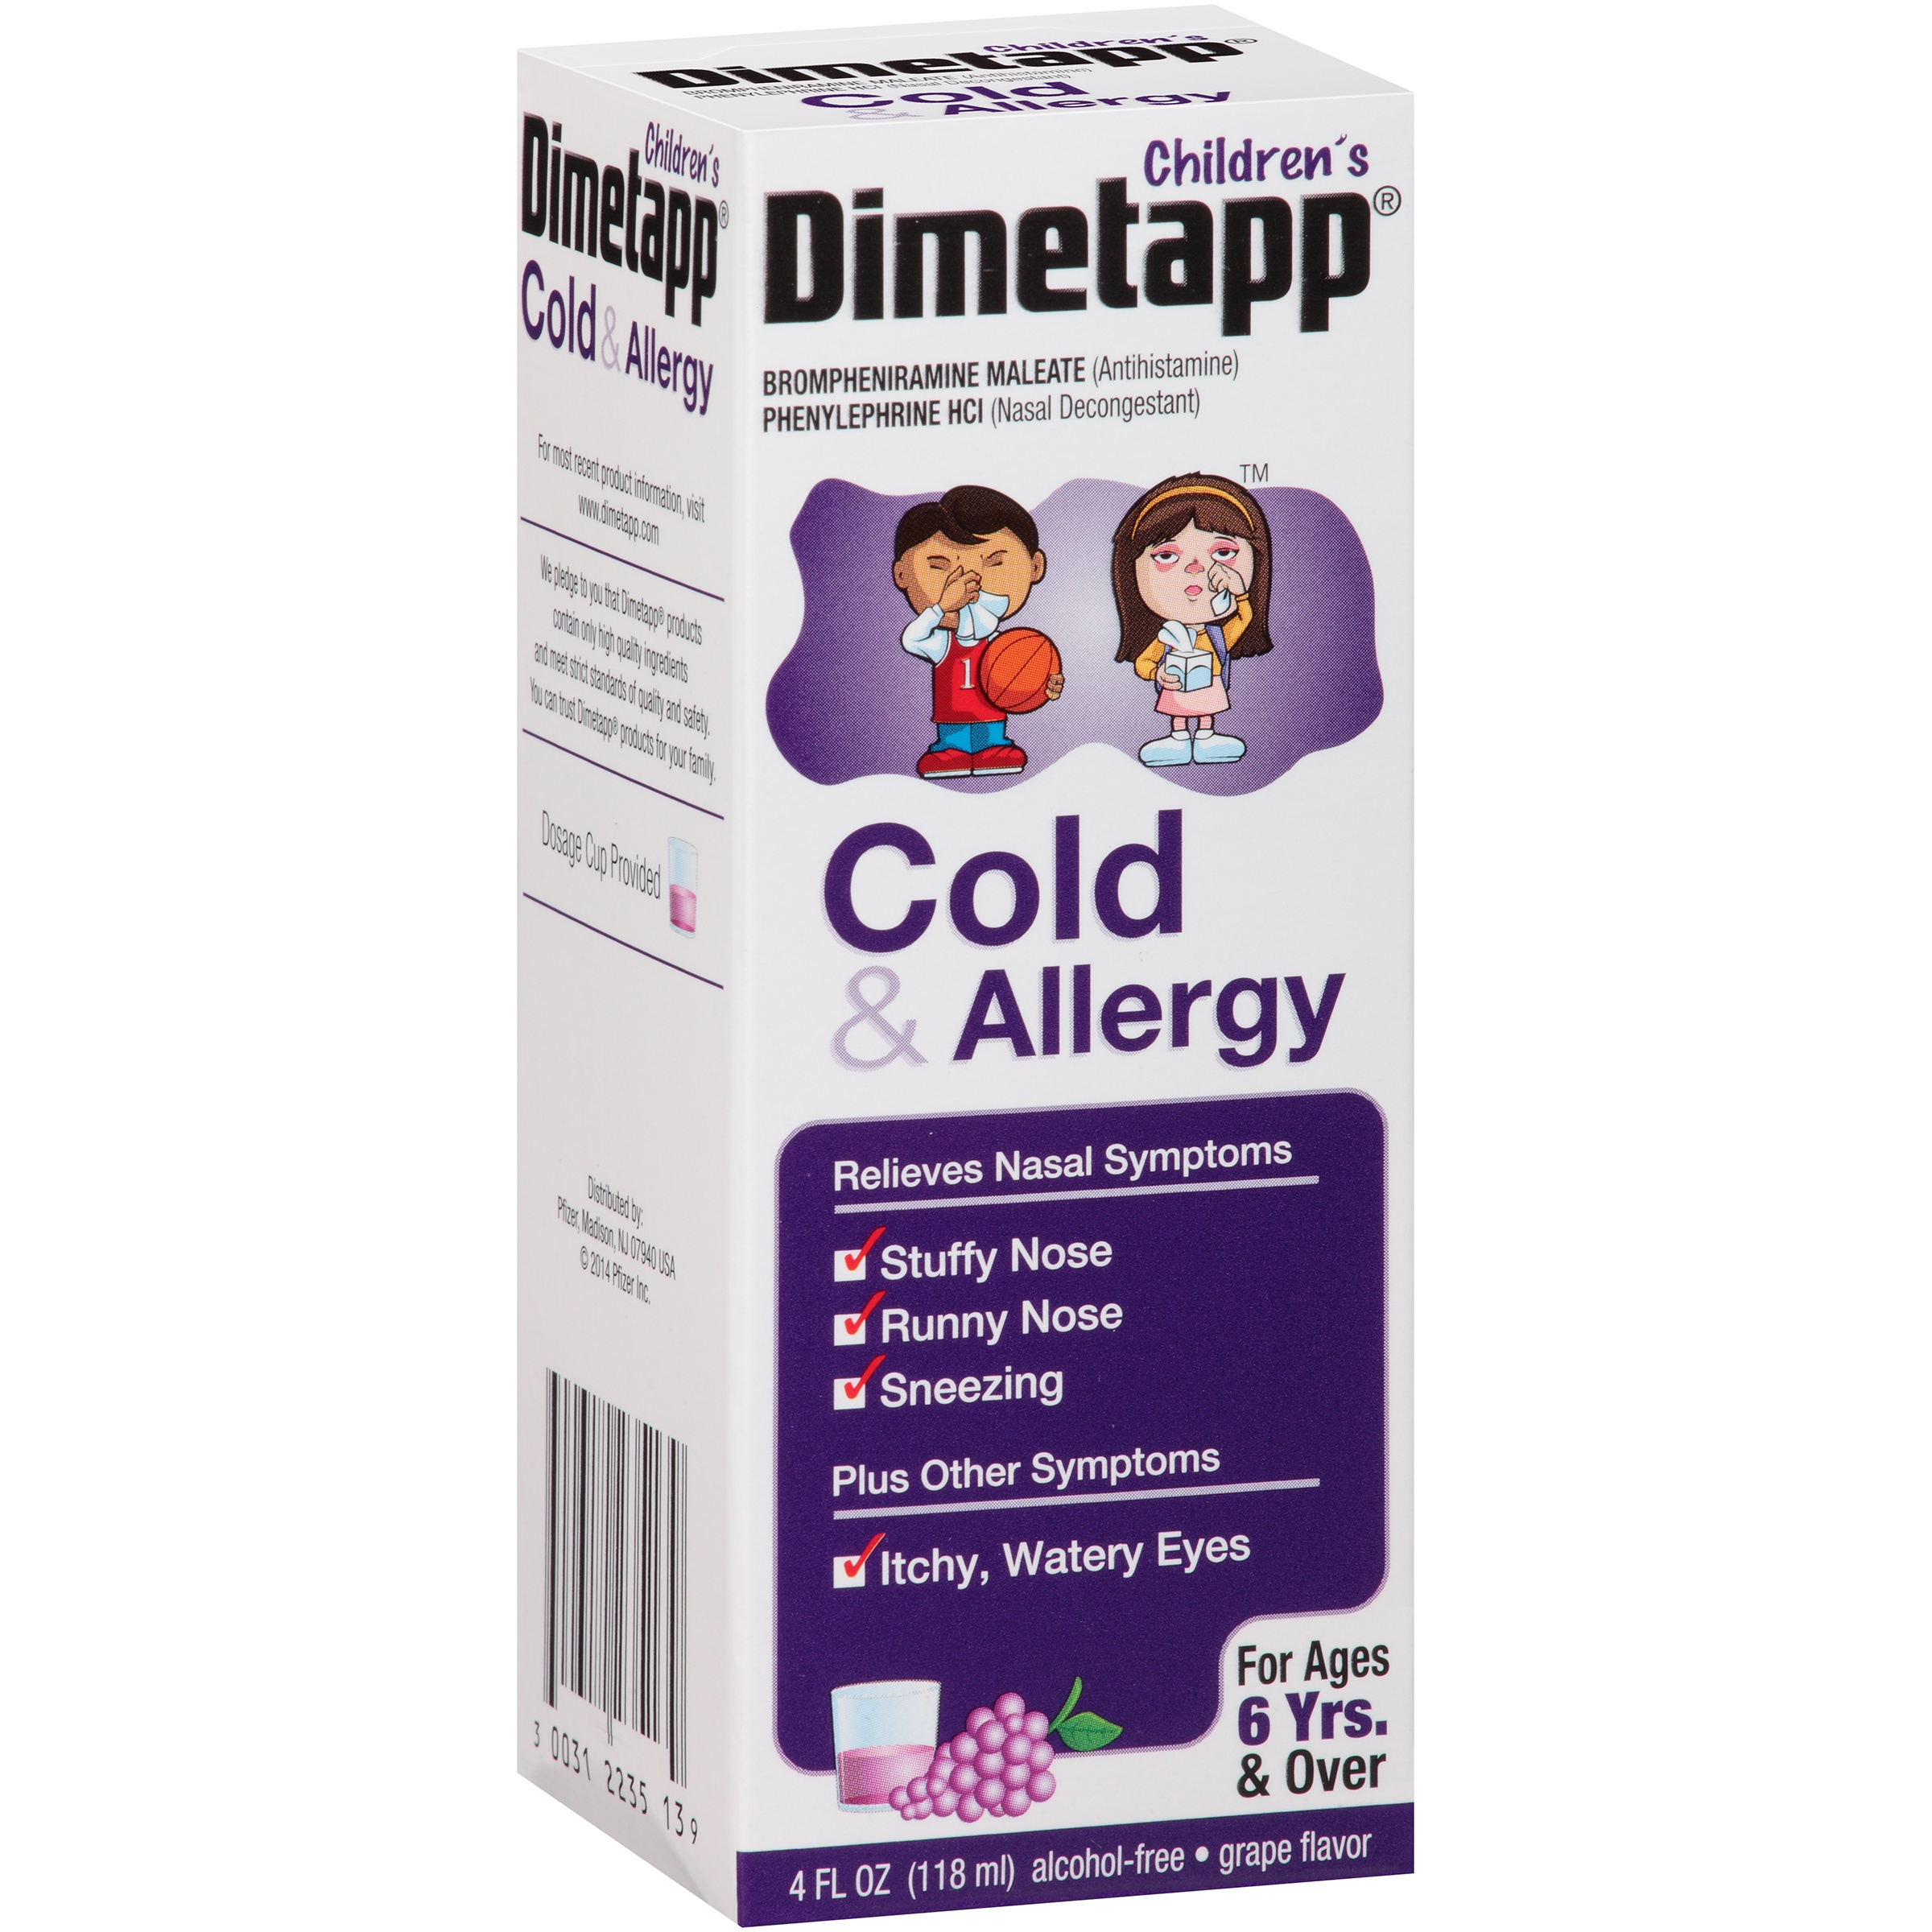 Children's Dimetapp Cold & Allergy Grape Flavor, 4.0 FL OZ